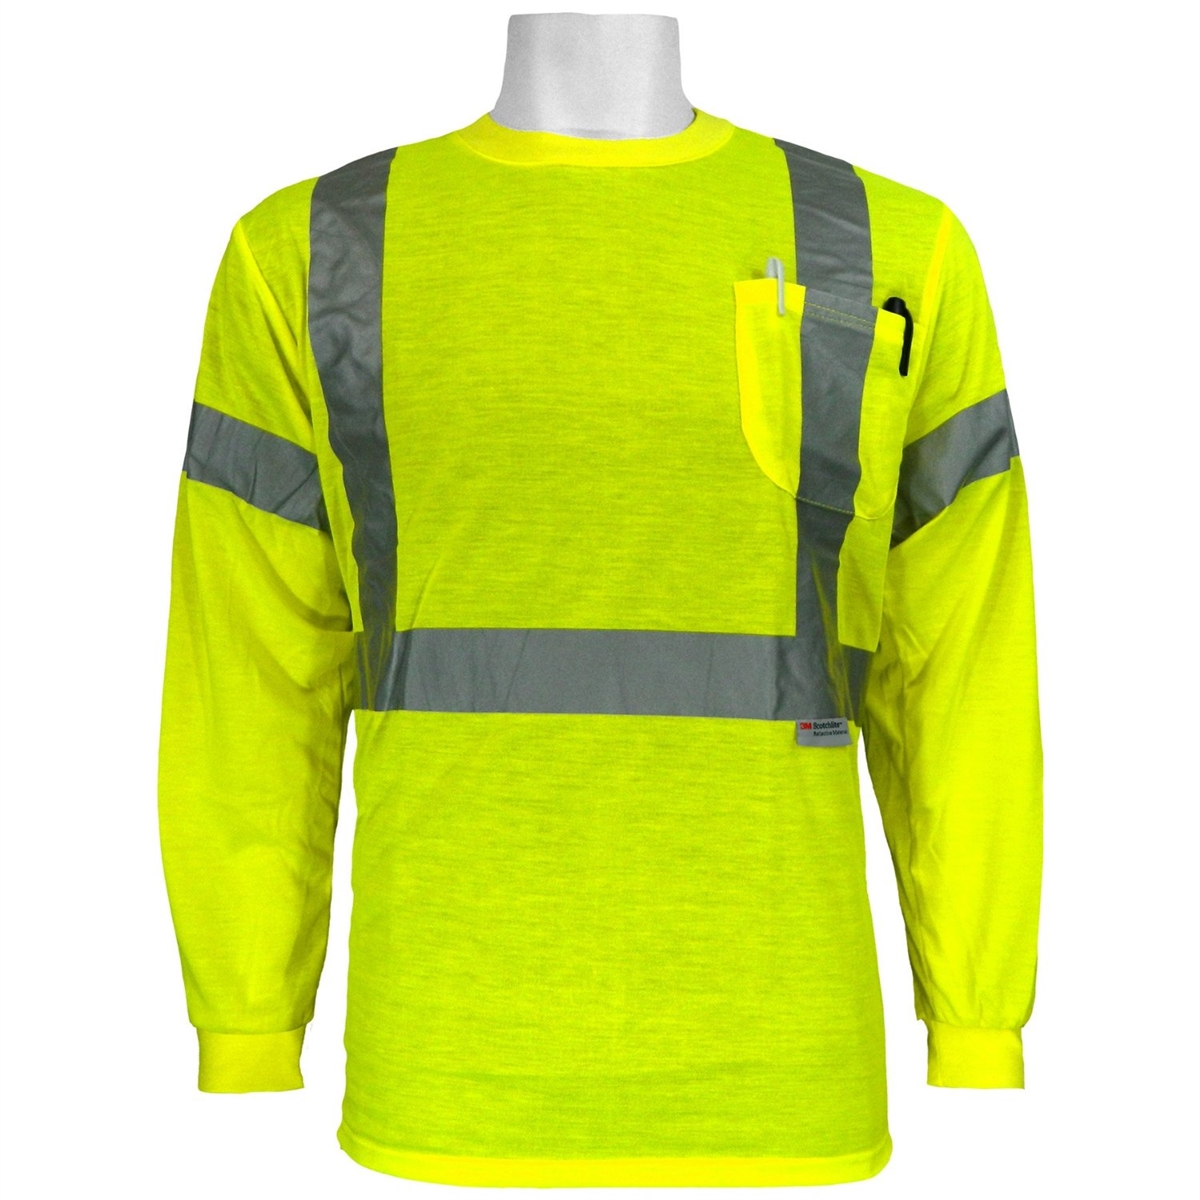 Global Glove Glo 008ls Ansi Class 3 Long Sleeve Shirt